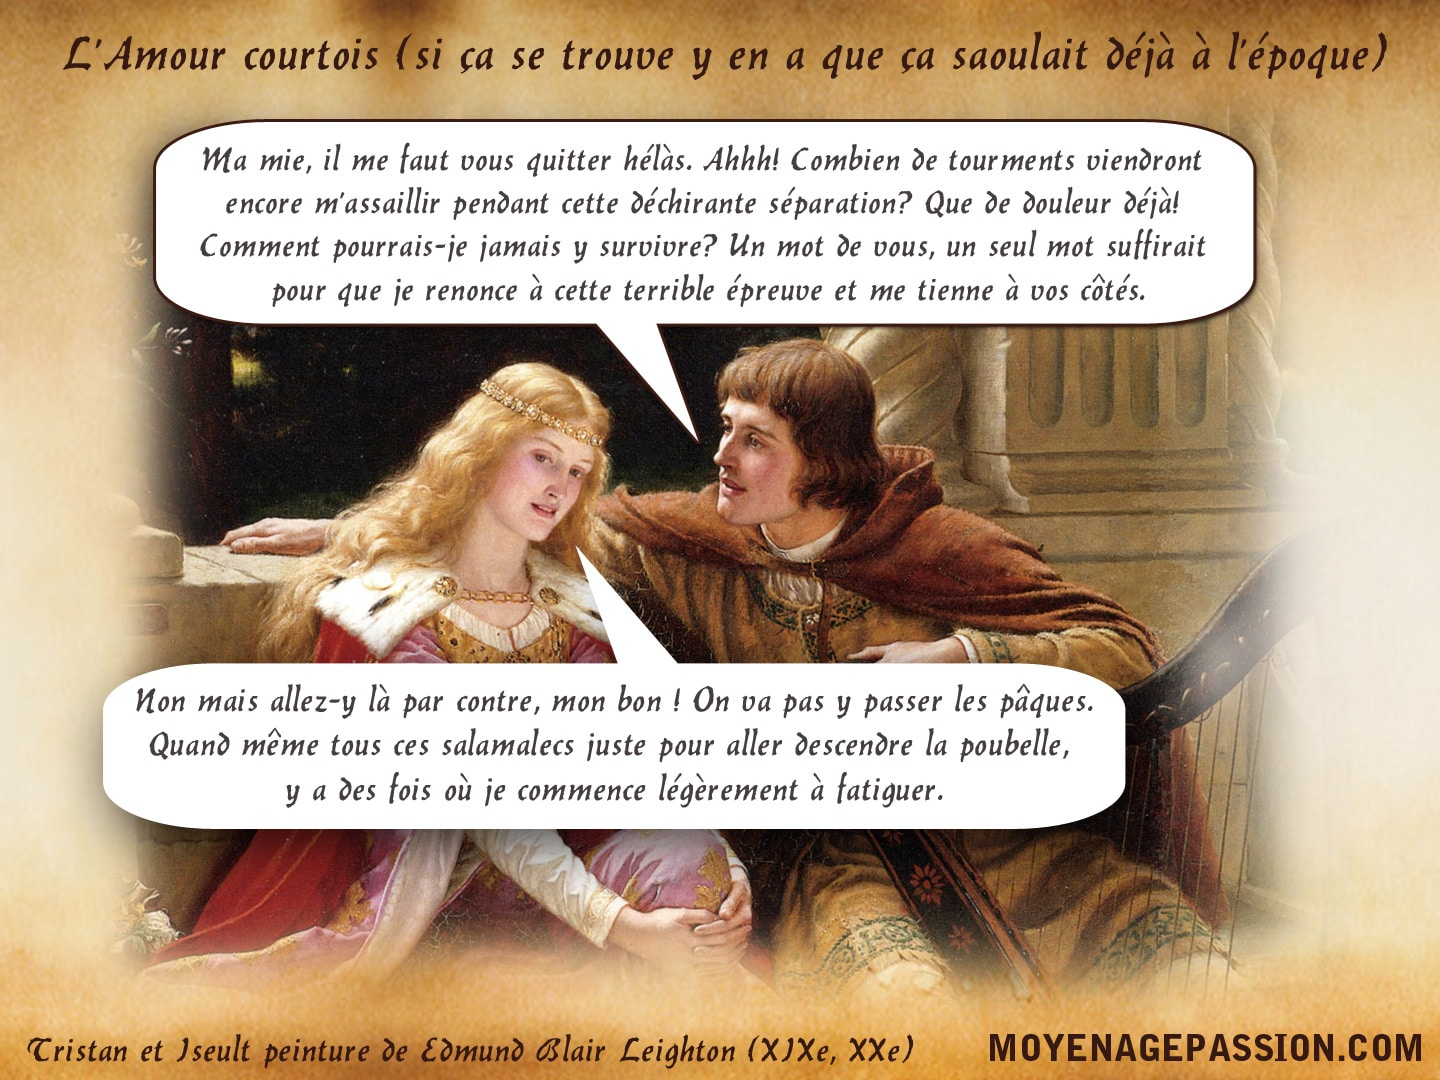 https://www.moyenagepassion.com//wp-content/uploads/2016/07/amour_courtois_humour_medieval_blague_moyen-age_passion.jpg